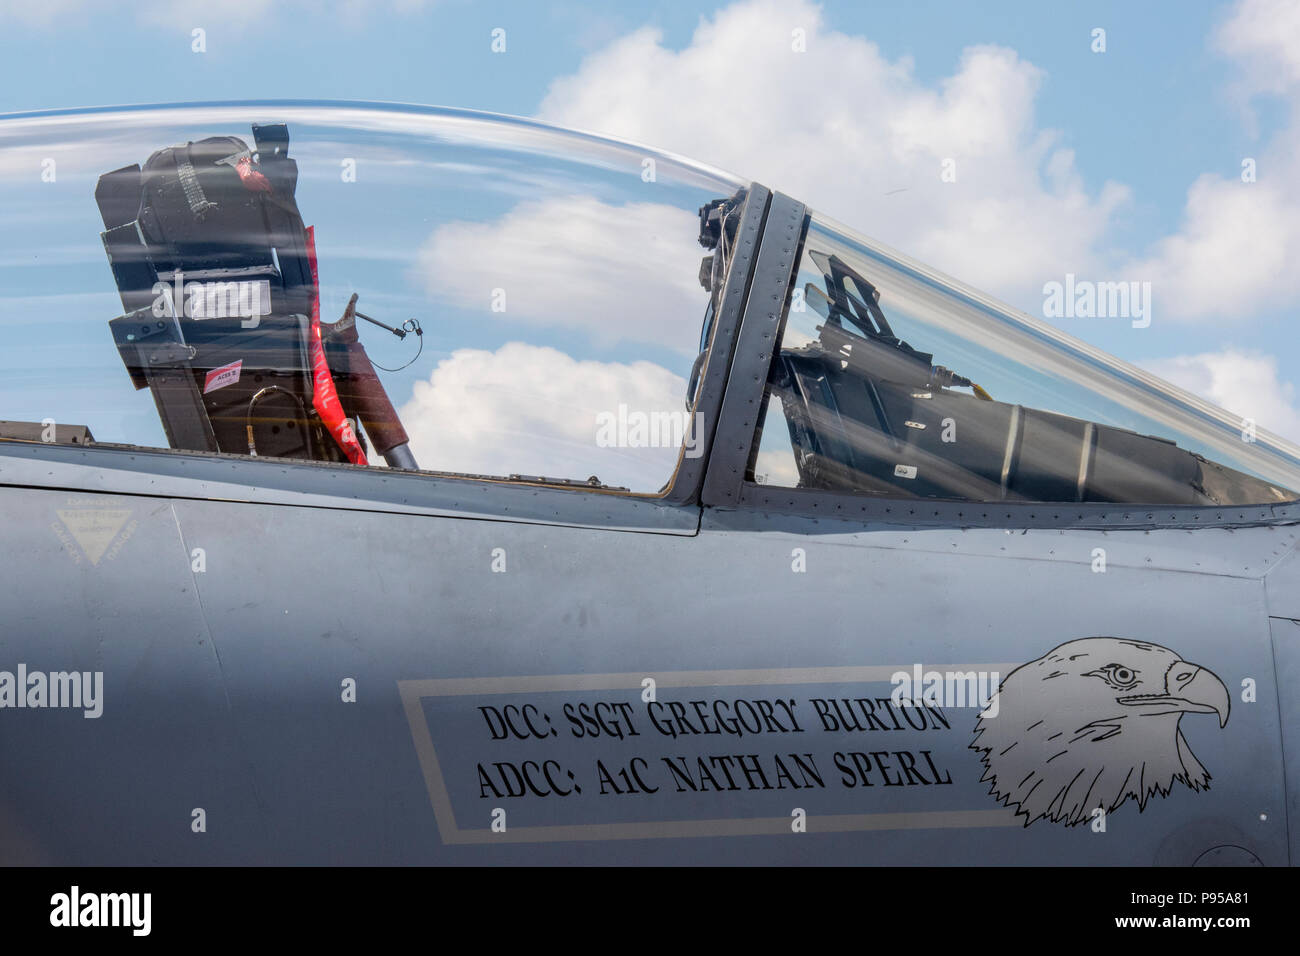 Gloucestershire, UK.14th July, 2018. Fighter jet cockpit at The Royal International Air Tattoo, RAF Fairford, Gloucestershire, United Kingdom. RIAT 2018 celebrating the 100th Anniversay Of the Royal Air Force with a massive air display at RAF Fairford in Gloucestershire. Air forces and fliers from arounf the world get together to provide stunning dislpays and areobatics for a huge record crowd of spectators. . Credit: Steve Hawkins Photography/Alamy Live News - Stock Image